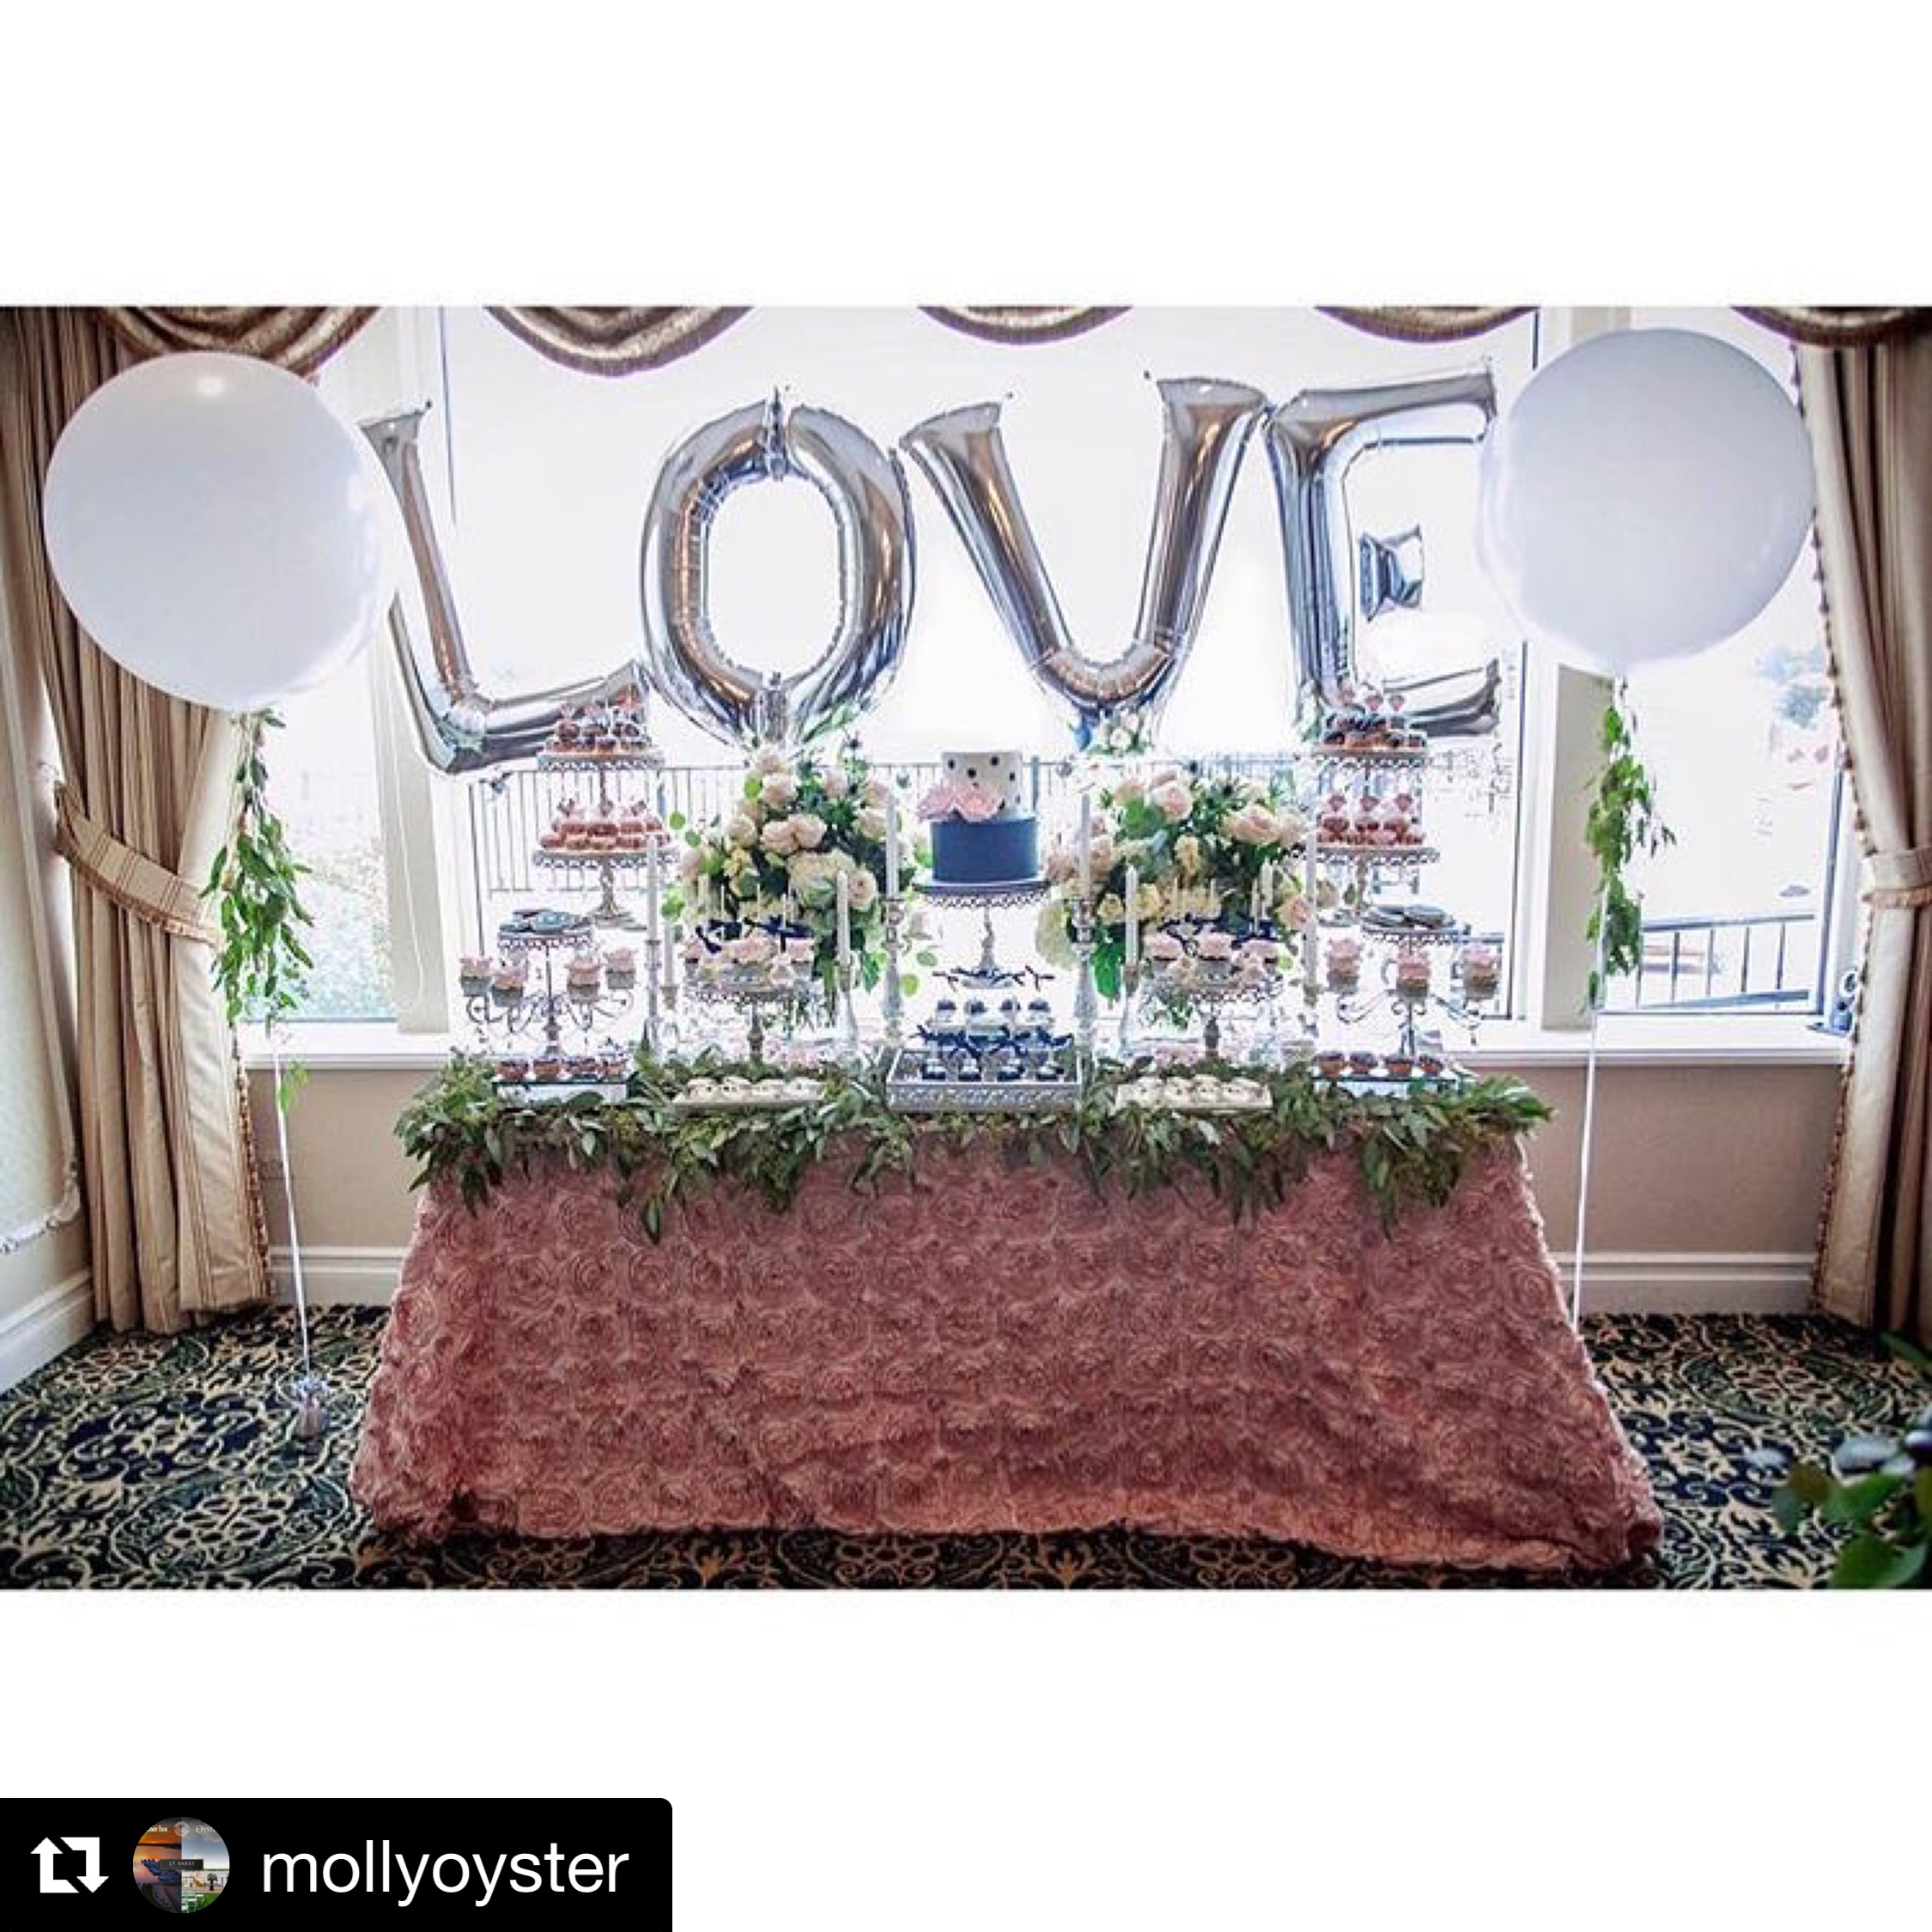 mollyoysterWe LOVE that we are in the business of celebrating LOVE! ❤️ 📸: @cristinkellydesign . . . #wedding #celebrate #weekend #mollypitcherinn #party #rumson #redbank #coltsneck #holmdel